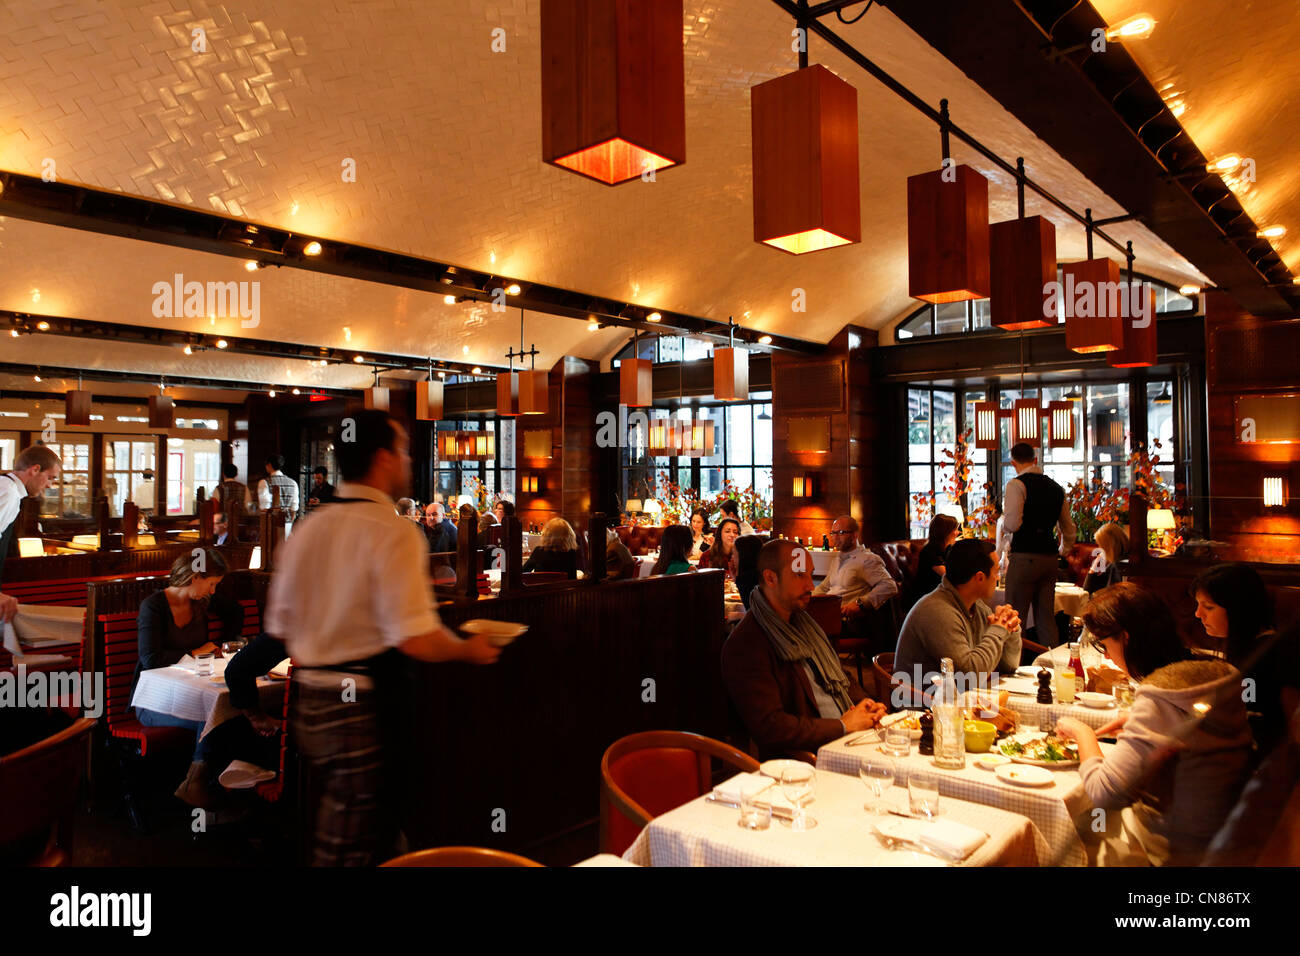 United States, New York City, Manhattan, Meatpacking District, Standard Hotel, room of The Standard Grill restaurant, - Stock Image